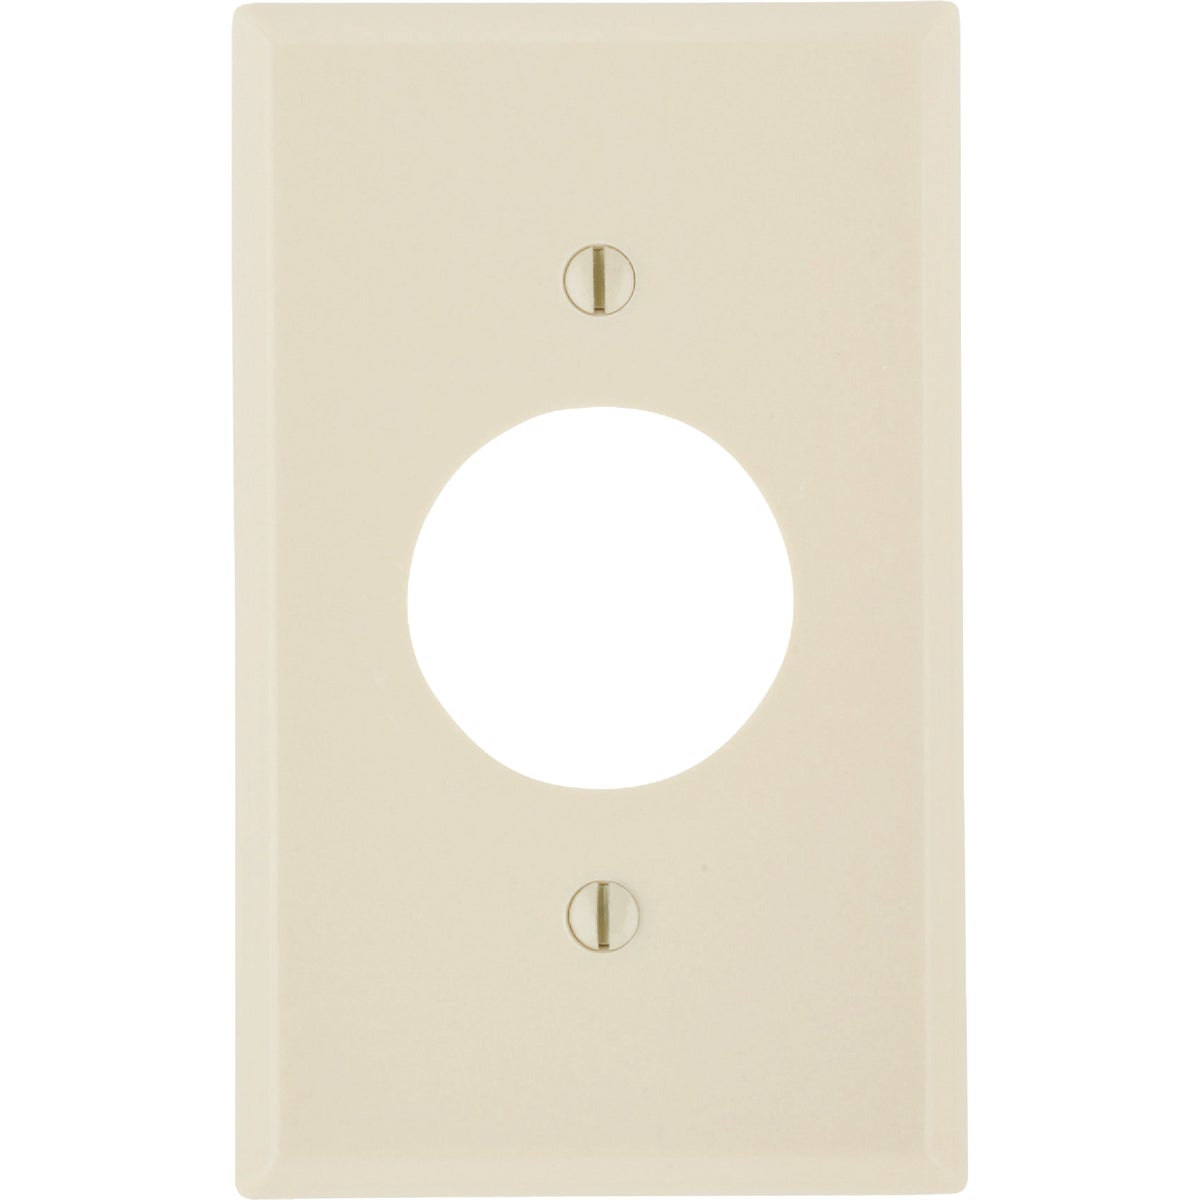 IV 1-OUTLET WALL PLATE - 86004 by Leviton Mfg Co